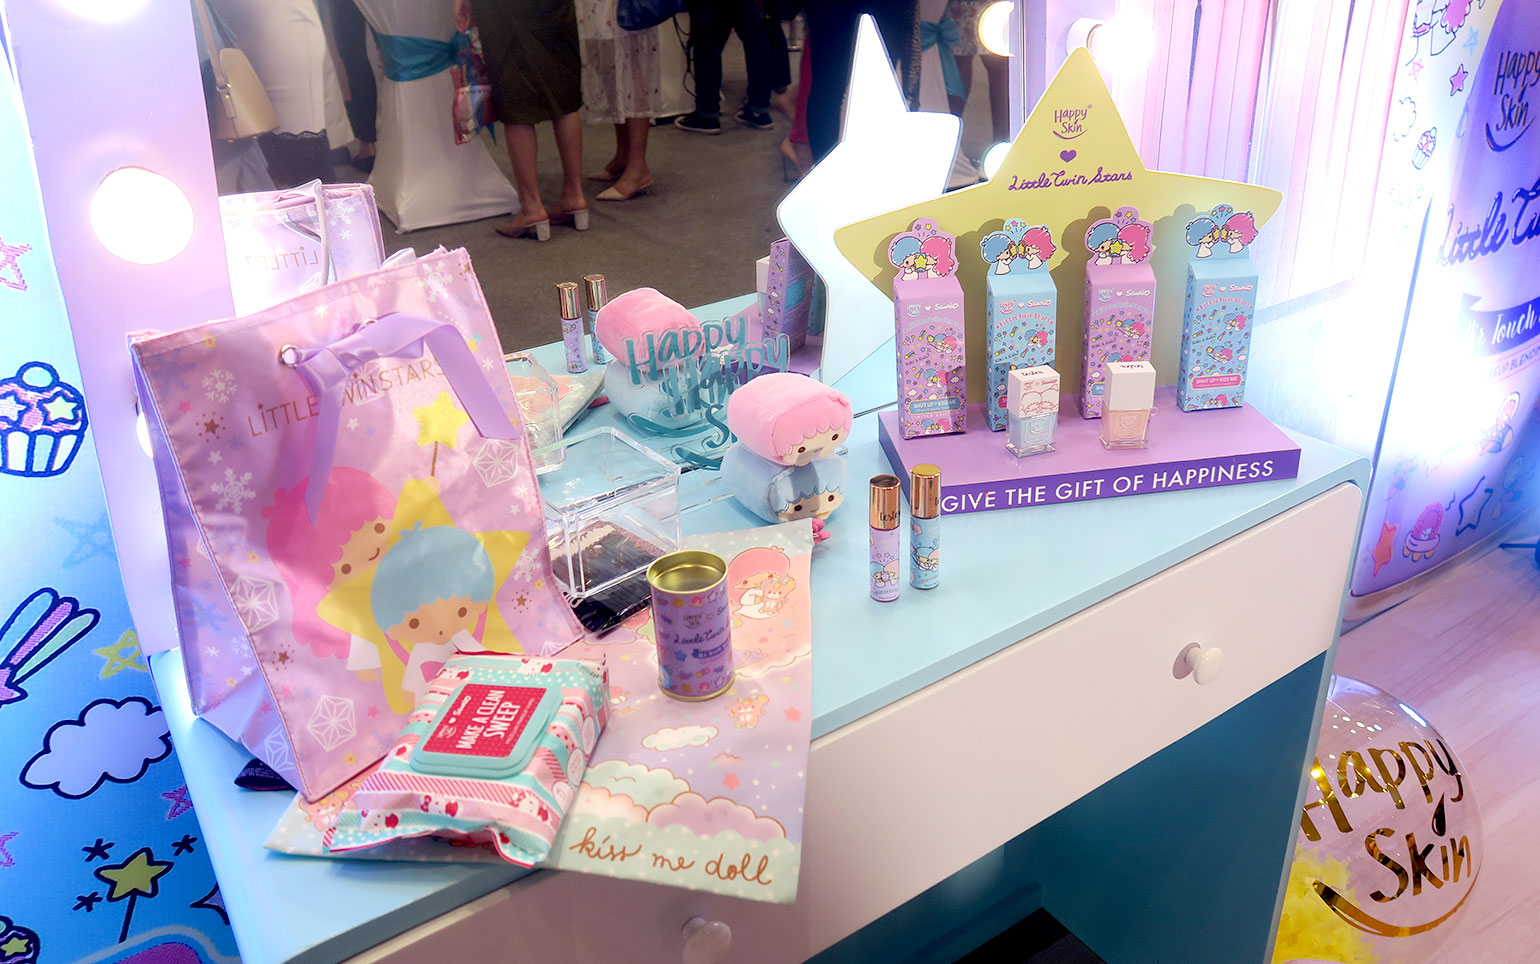 2 Happy Skin x Sanrio Characters - Grand Launch, Preview, Swatches - Gen-zel - She Sings Beauty